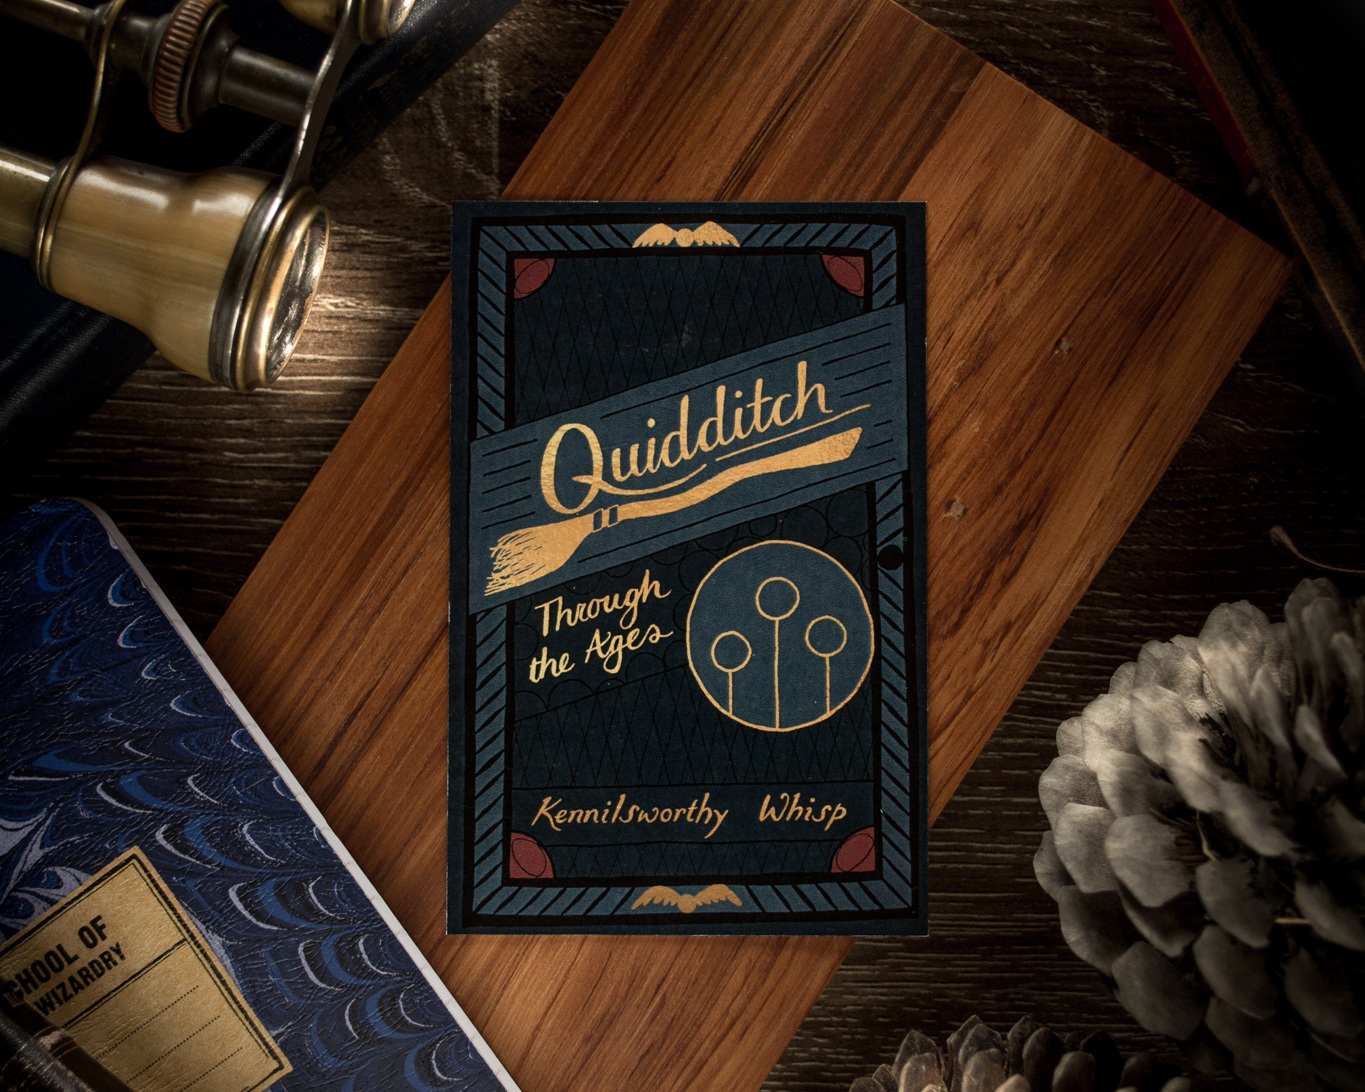 Quidditch_through_the_ages_harry_potter_textbook_holly_dunn_design.jpg